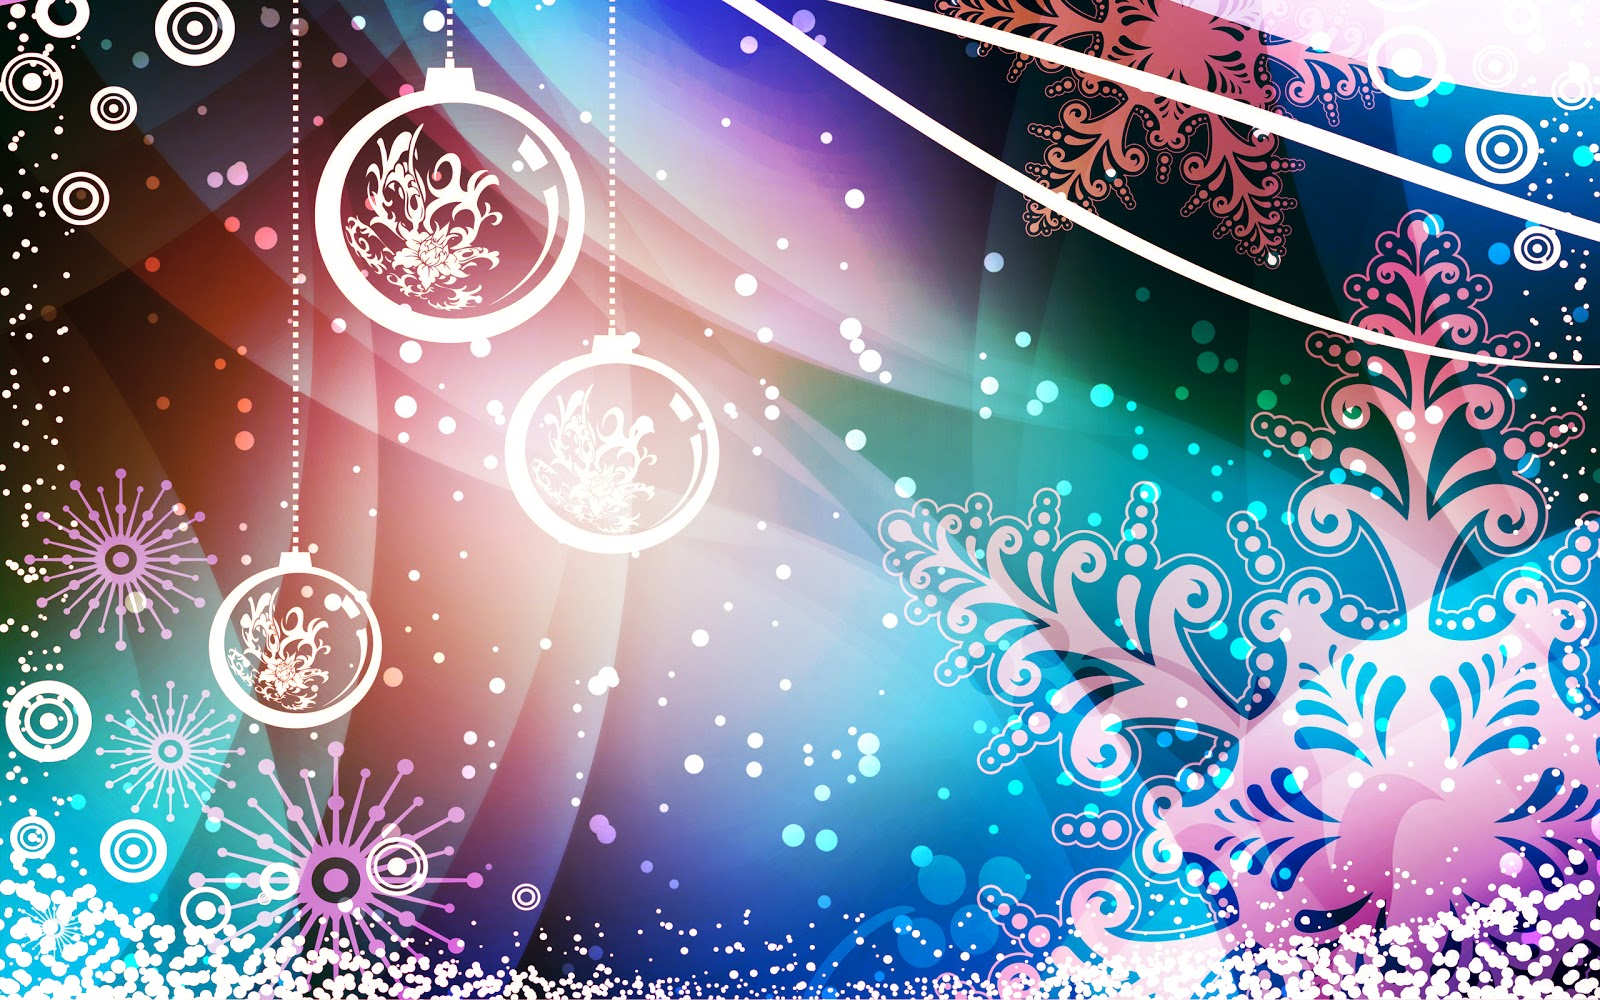 merry christmas 2013 wallpaper merry christmas 2013 wallpaper merry 1600x1000